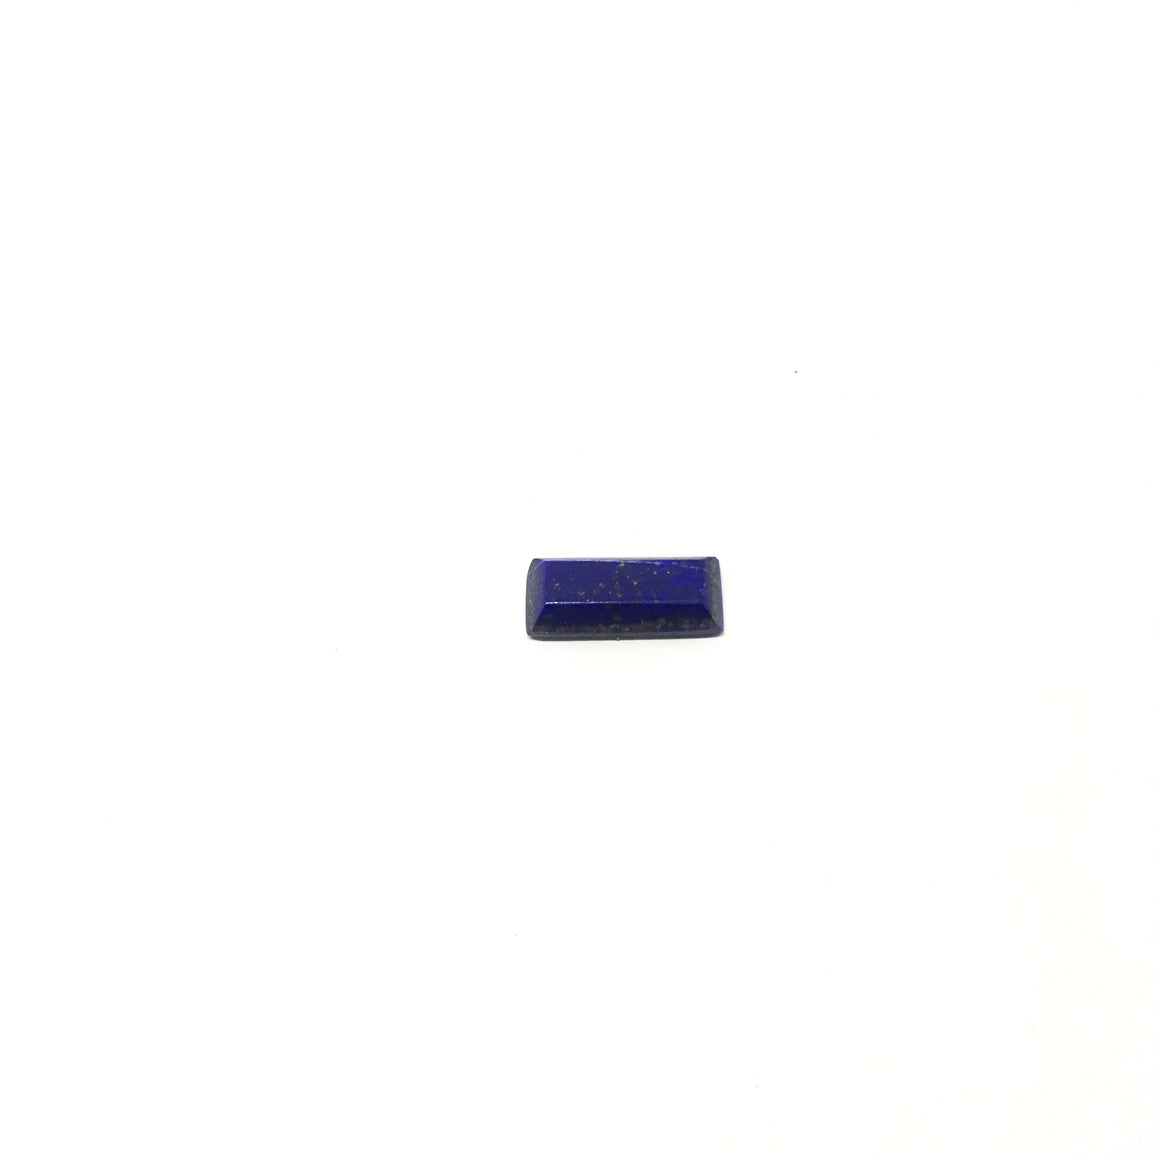 Lapis Lazuli Cabochon - Lapis Cabochon For Ring Baguette Cut - 10.85 ct